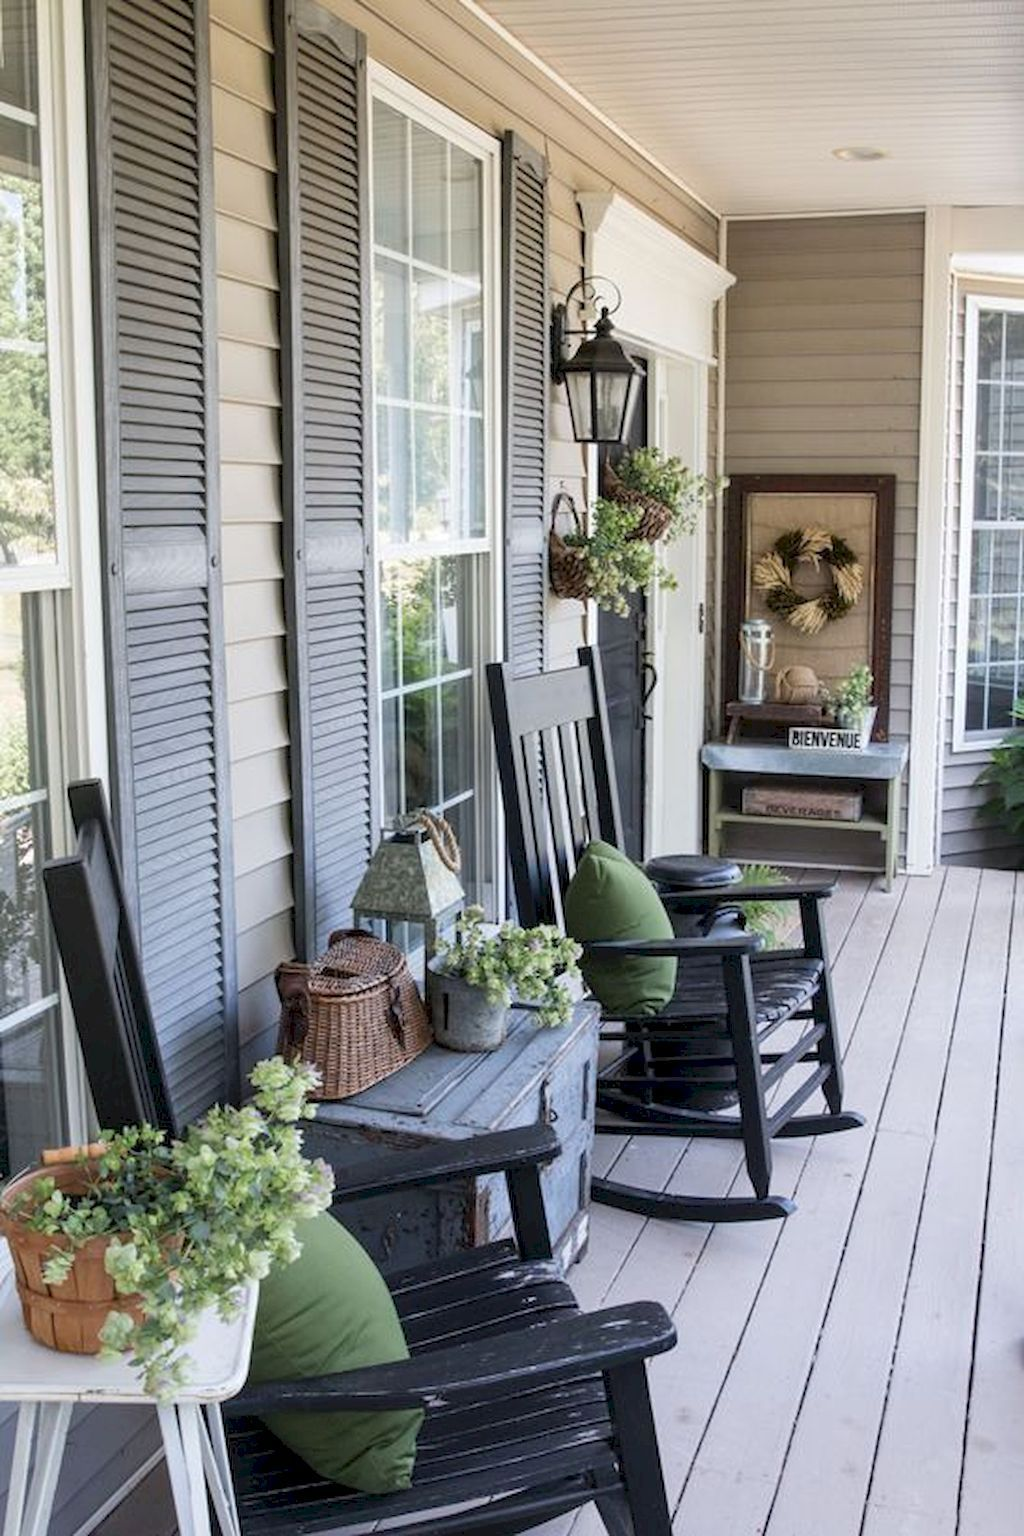 51 Beautiful Farmhouse Front Porch Decorating Ideas & 51 Beautiful Farmhouse Front Porch Decorating Ideas | Pinterest ...